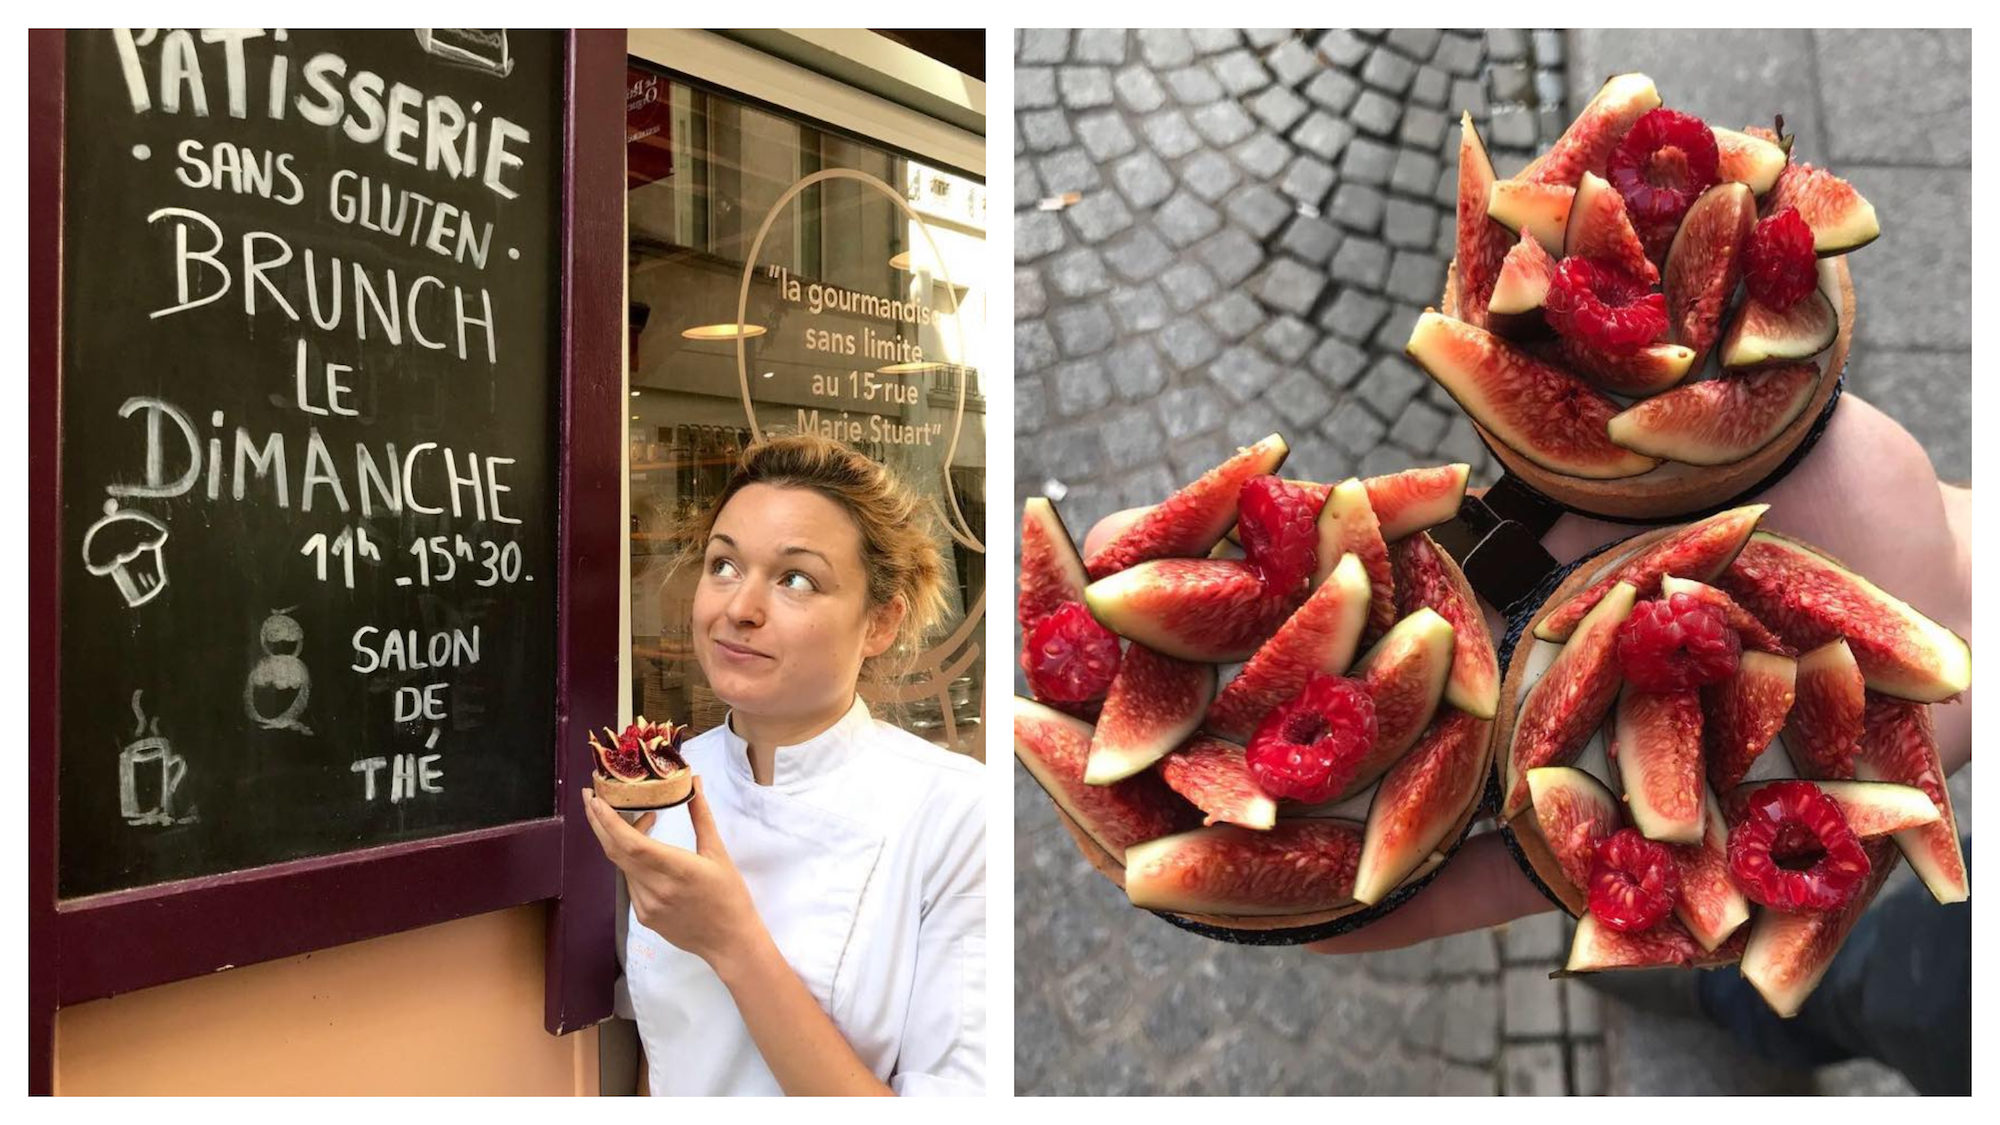 Sitron is a gluten-free bakery in Paris' Batignolles area and has a chalkboard sign outside (left). Sitron has delicious French gluten-free fig tarts (right).